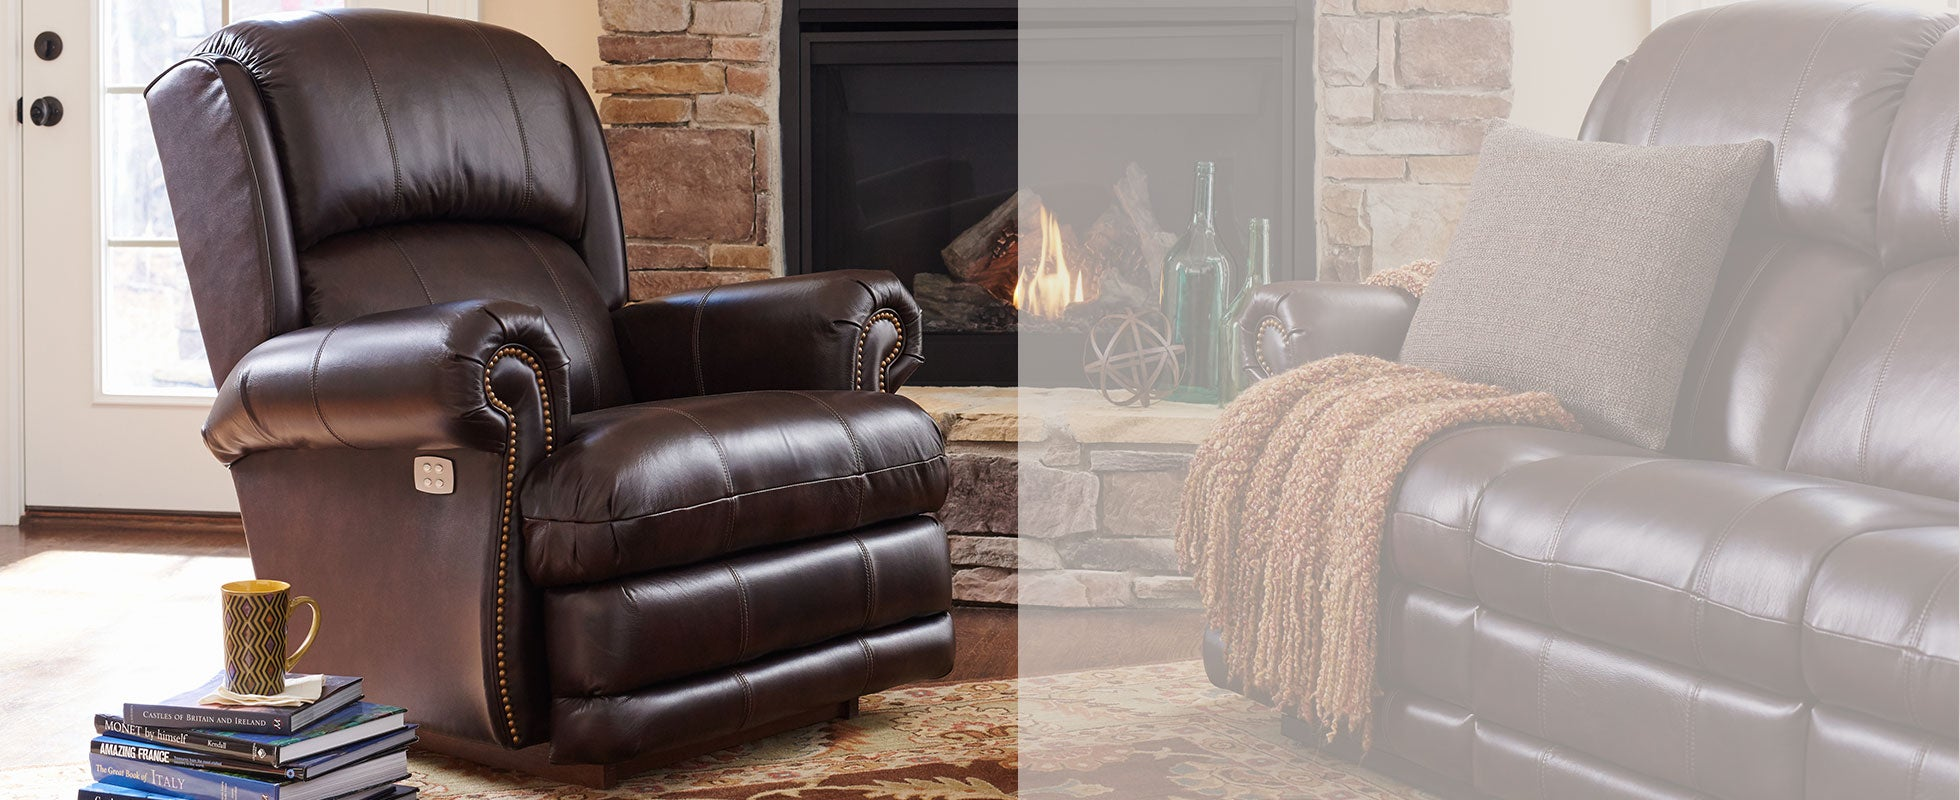 Fabric Reading Chair Amazing Reading Chair And Ottoman Design Your Furniture Online Recliners